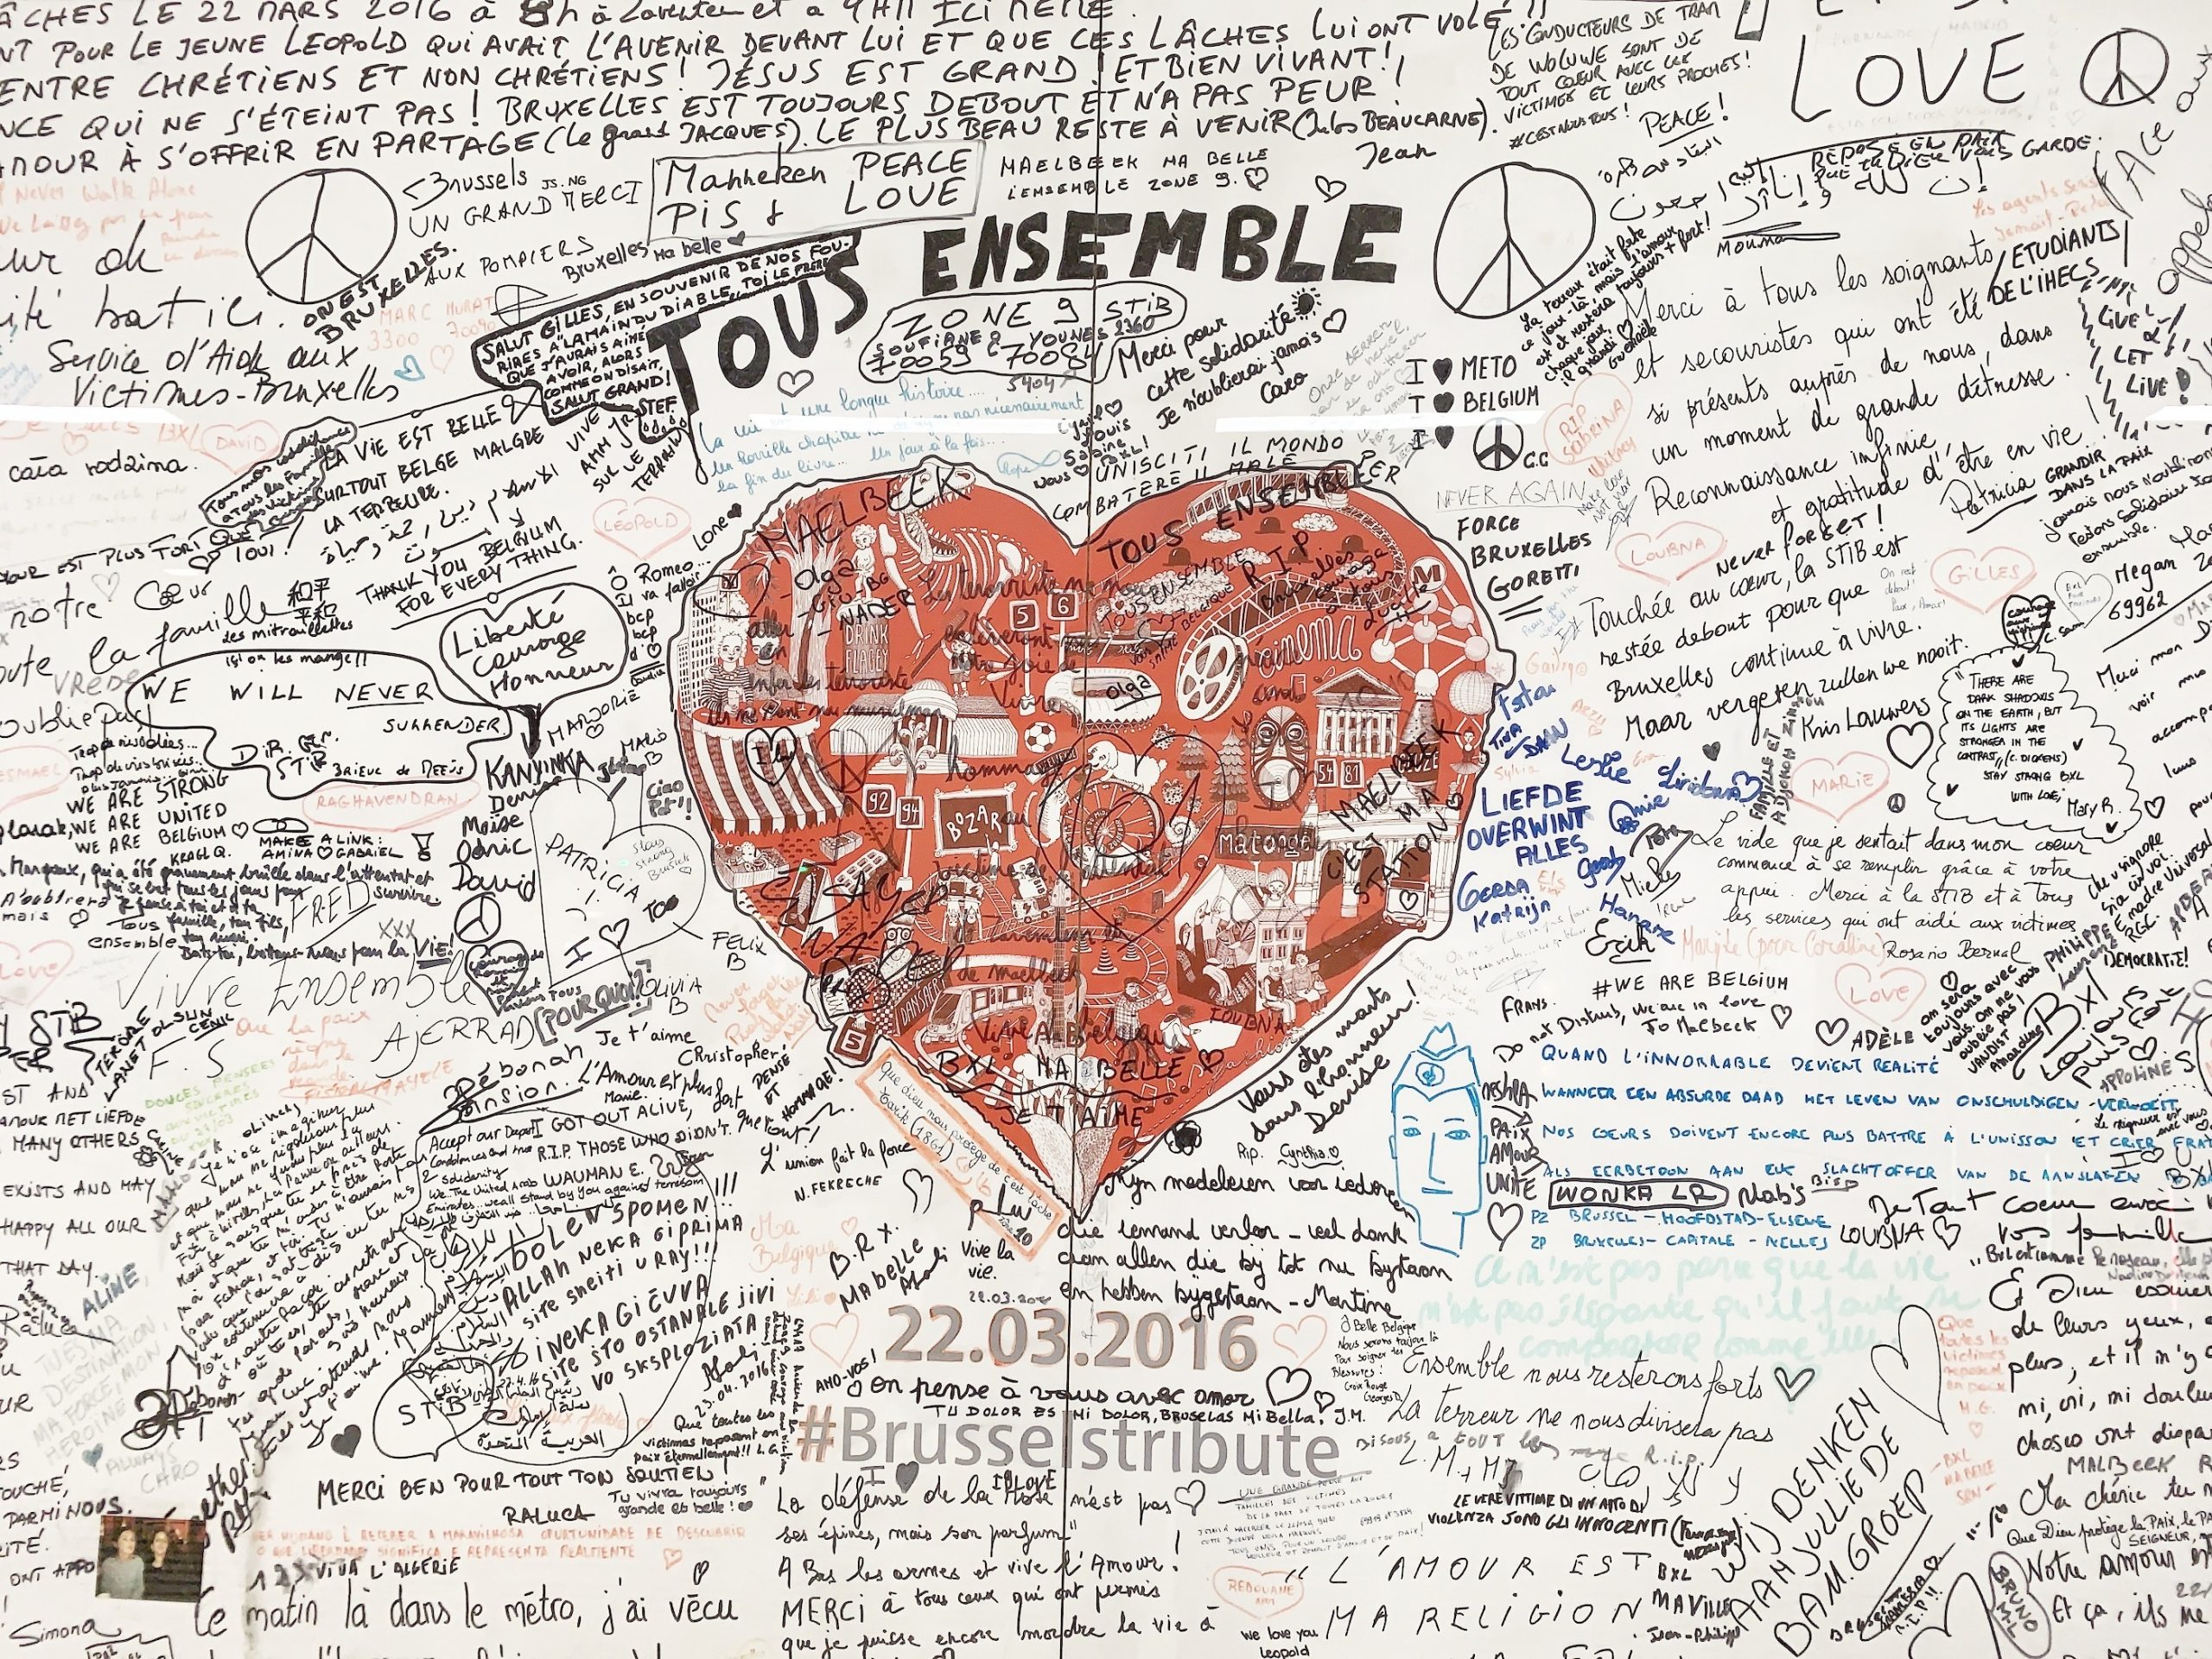 From Brussels with love. Maelbeek metro, memorial wall.